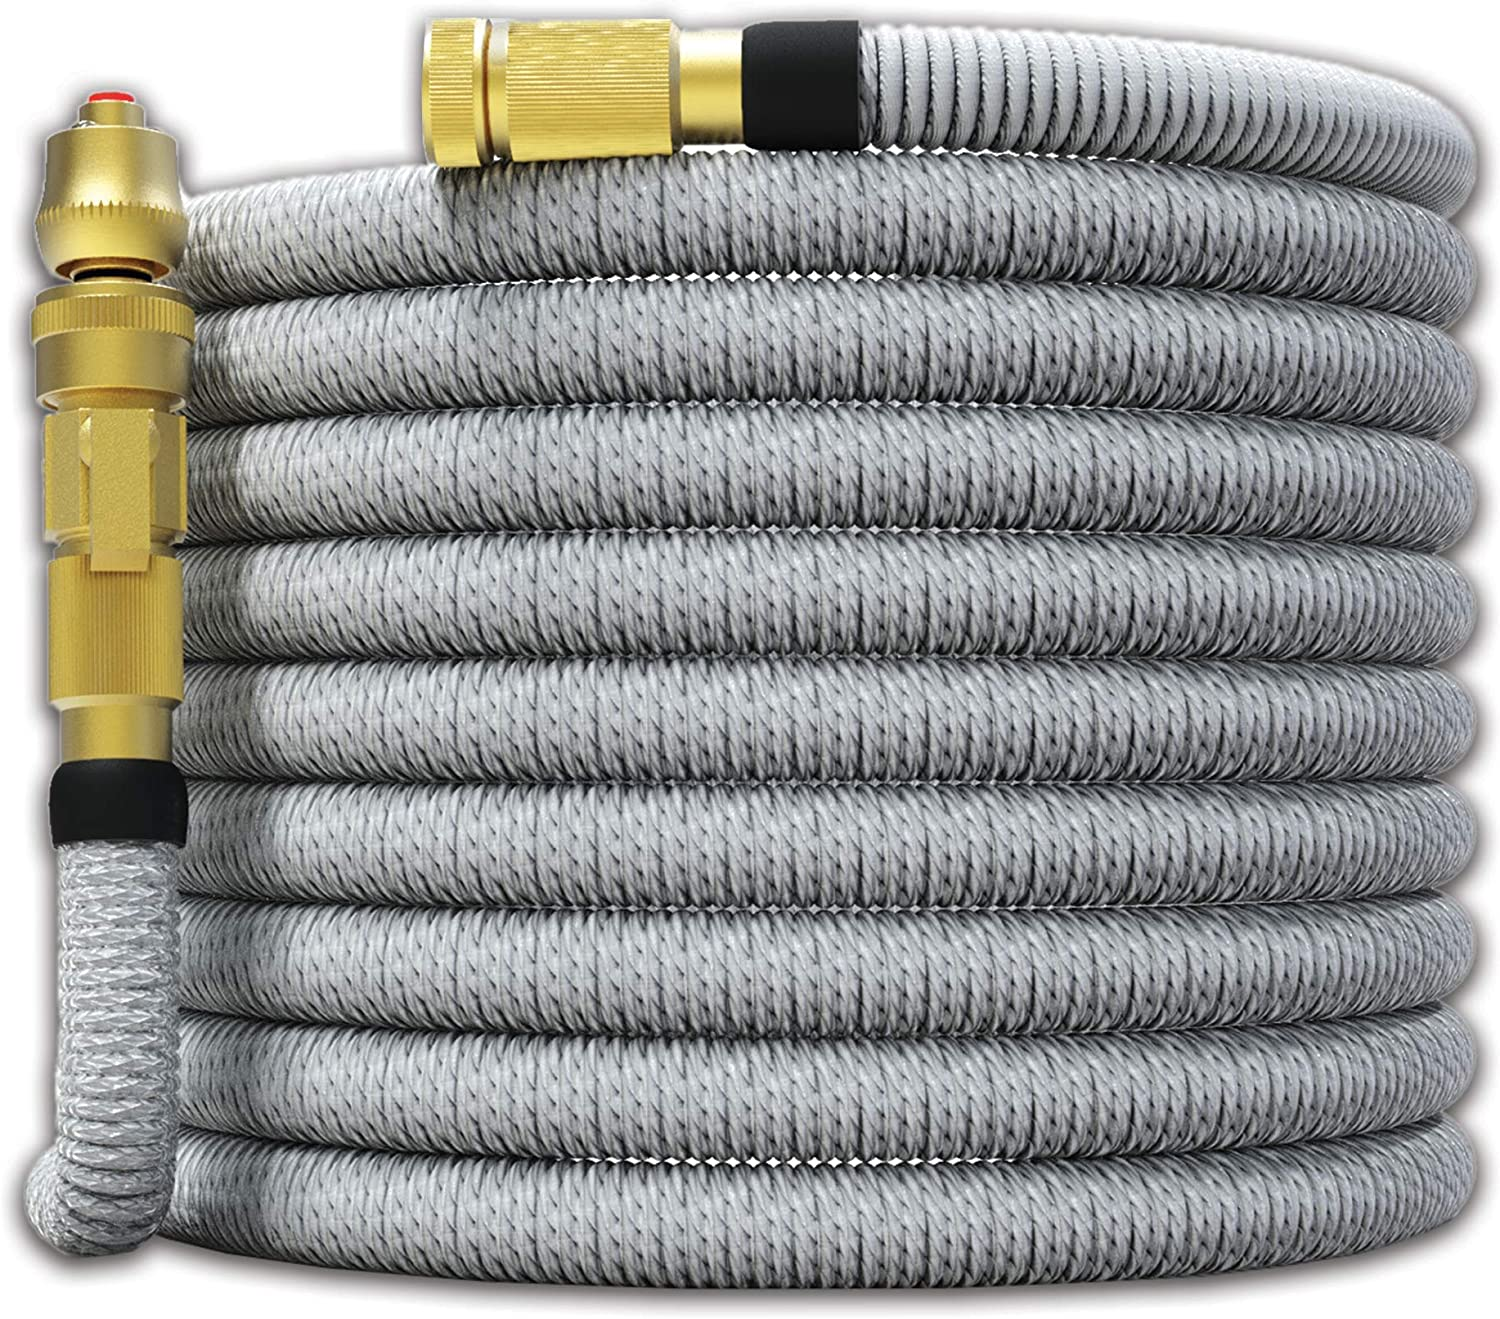 "TITAN 15FT Garden Hose - All New Expandable Water Hose with Dual Latex Core 3/4"" Solid Brass Fittings Expanding Extra Strength Fabric Flexible Hose with Jet Nozzle and Washers"